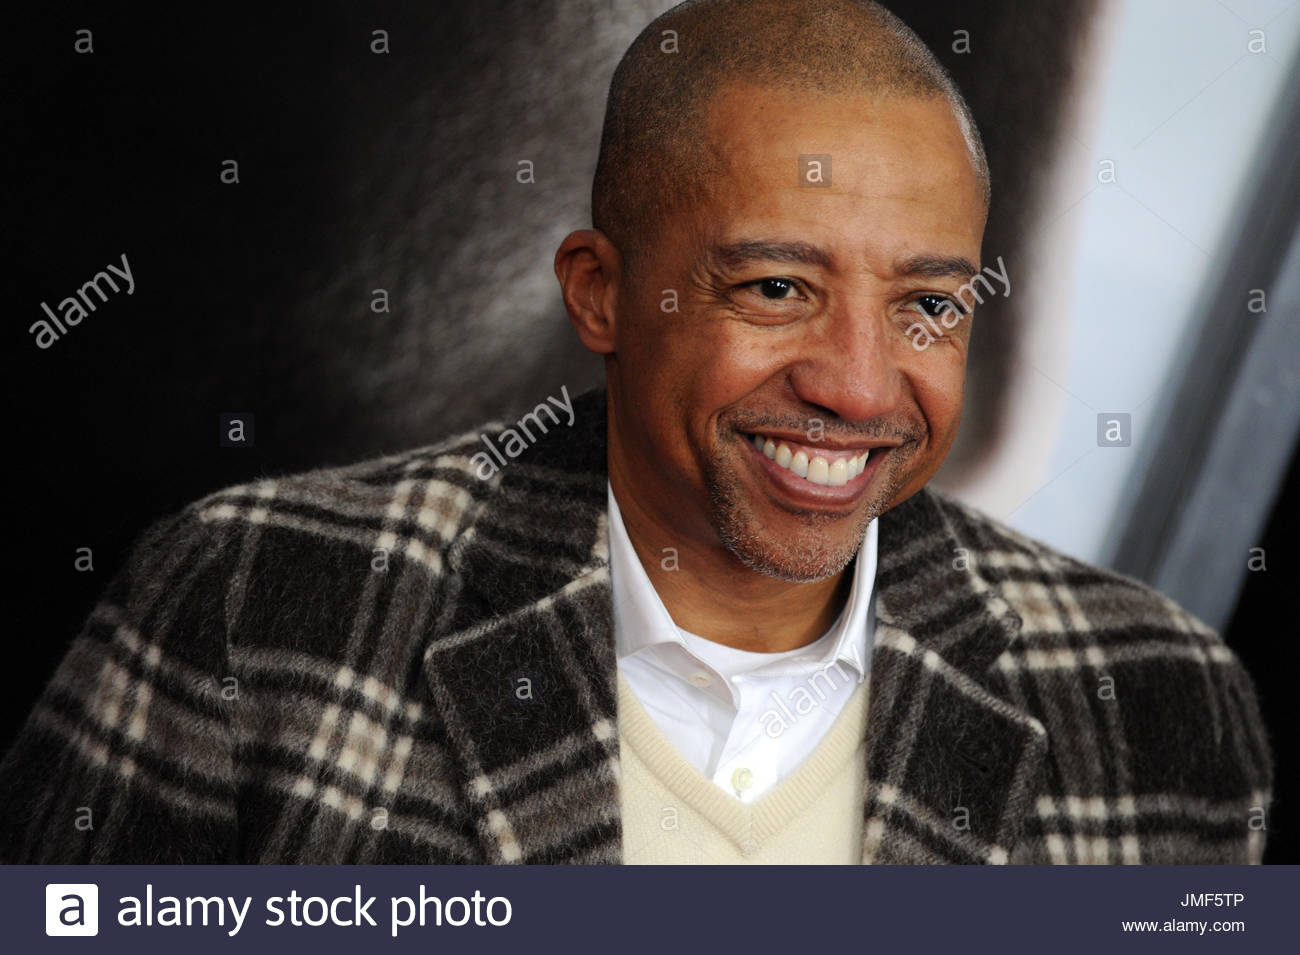 Kevin Liles. Will Smith attends the 'Concussion' New York premiere at AMC Loews Lincoln Square on December - Stock Image